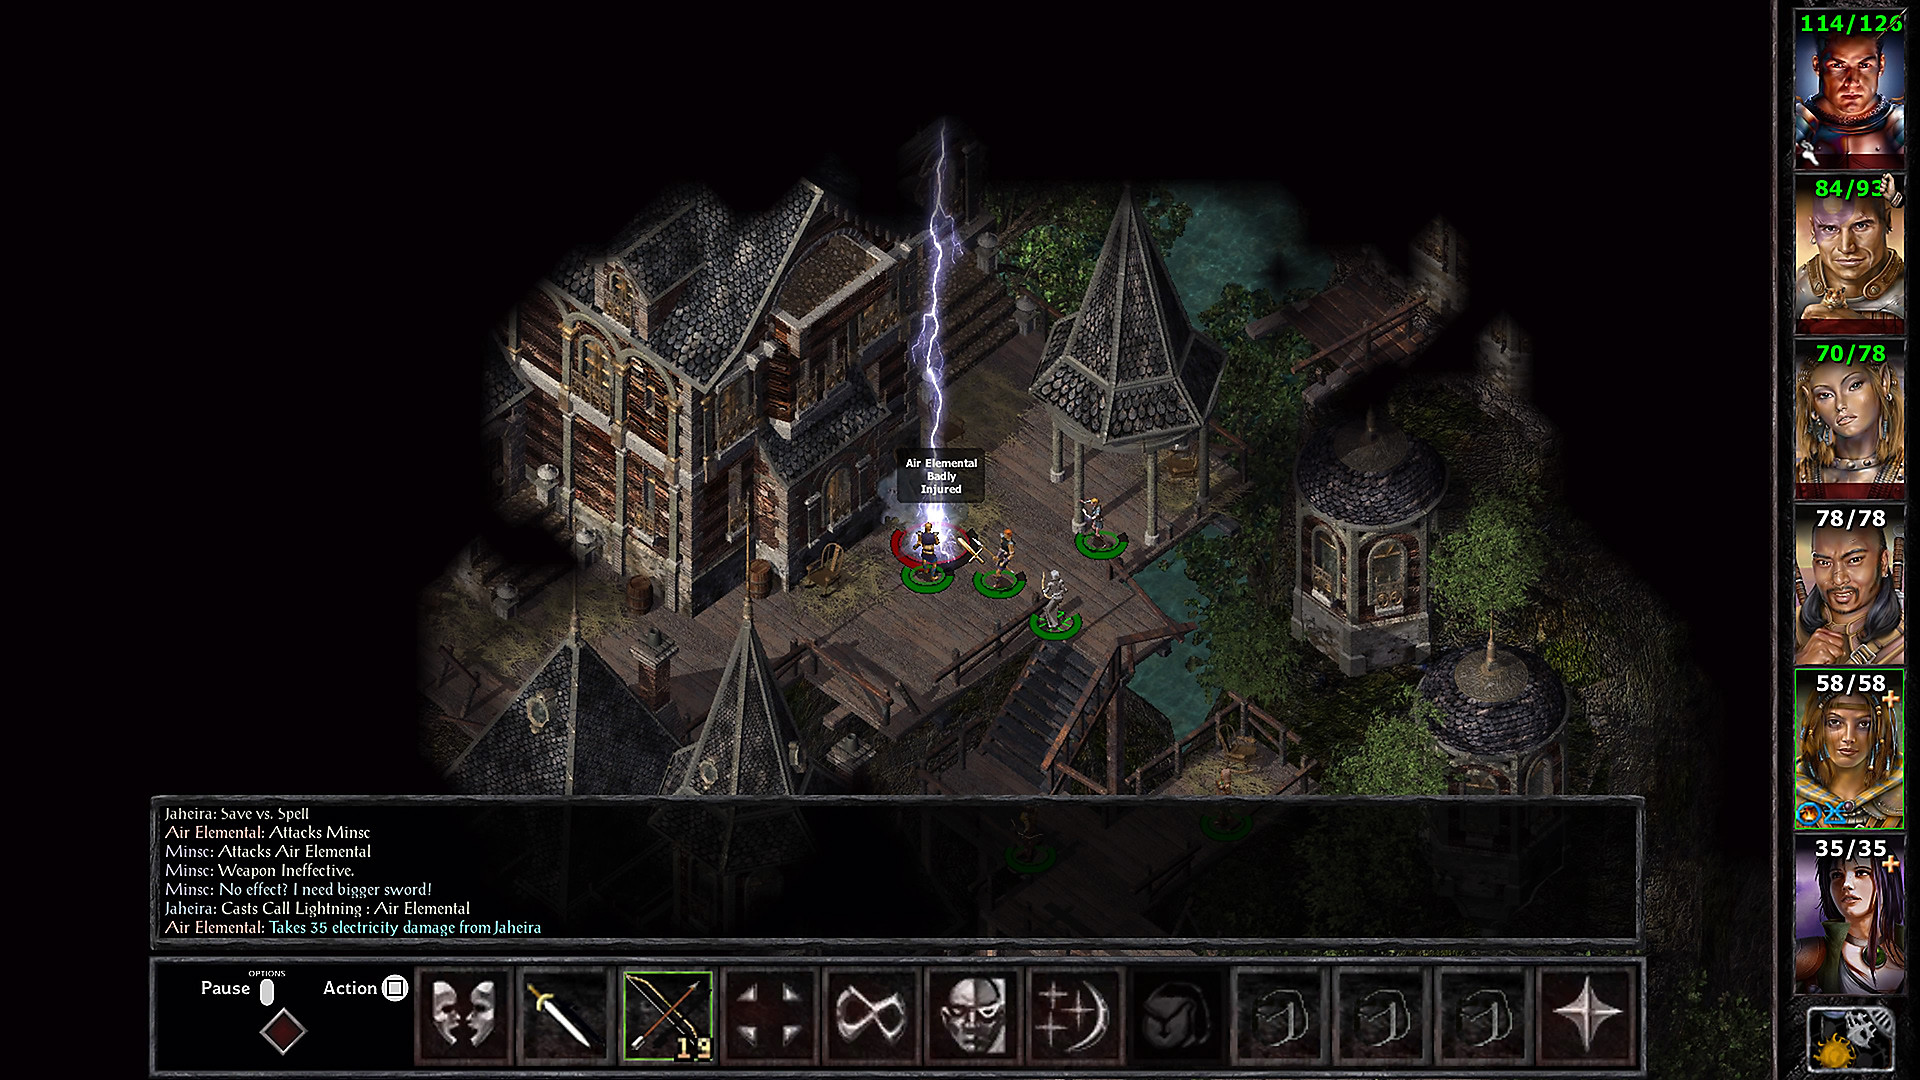 Baldur's Gate and Baldur's Gate II: Enhanced Editions in Action